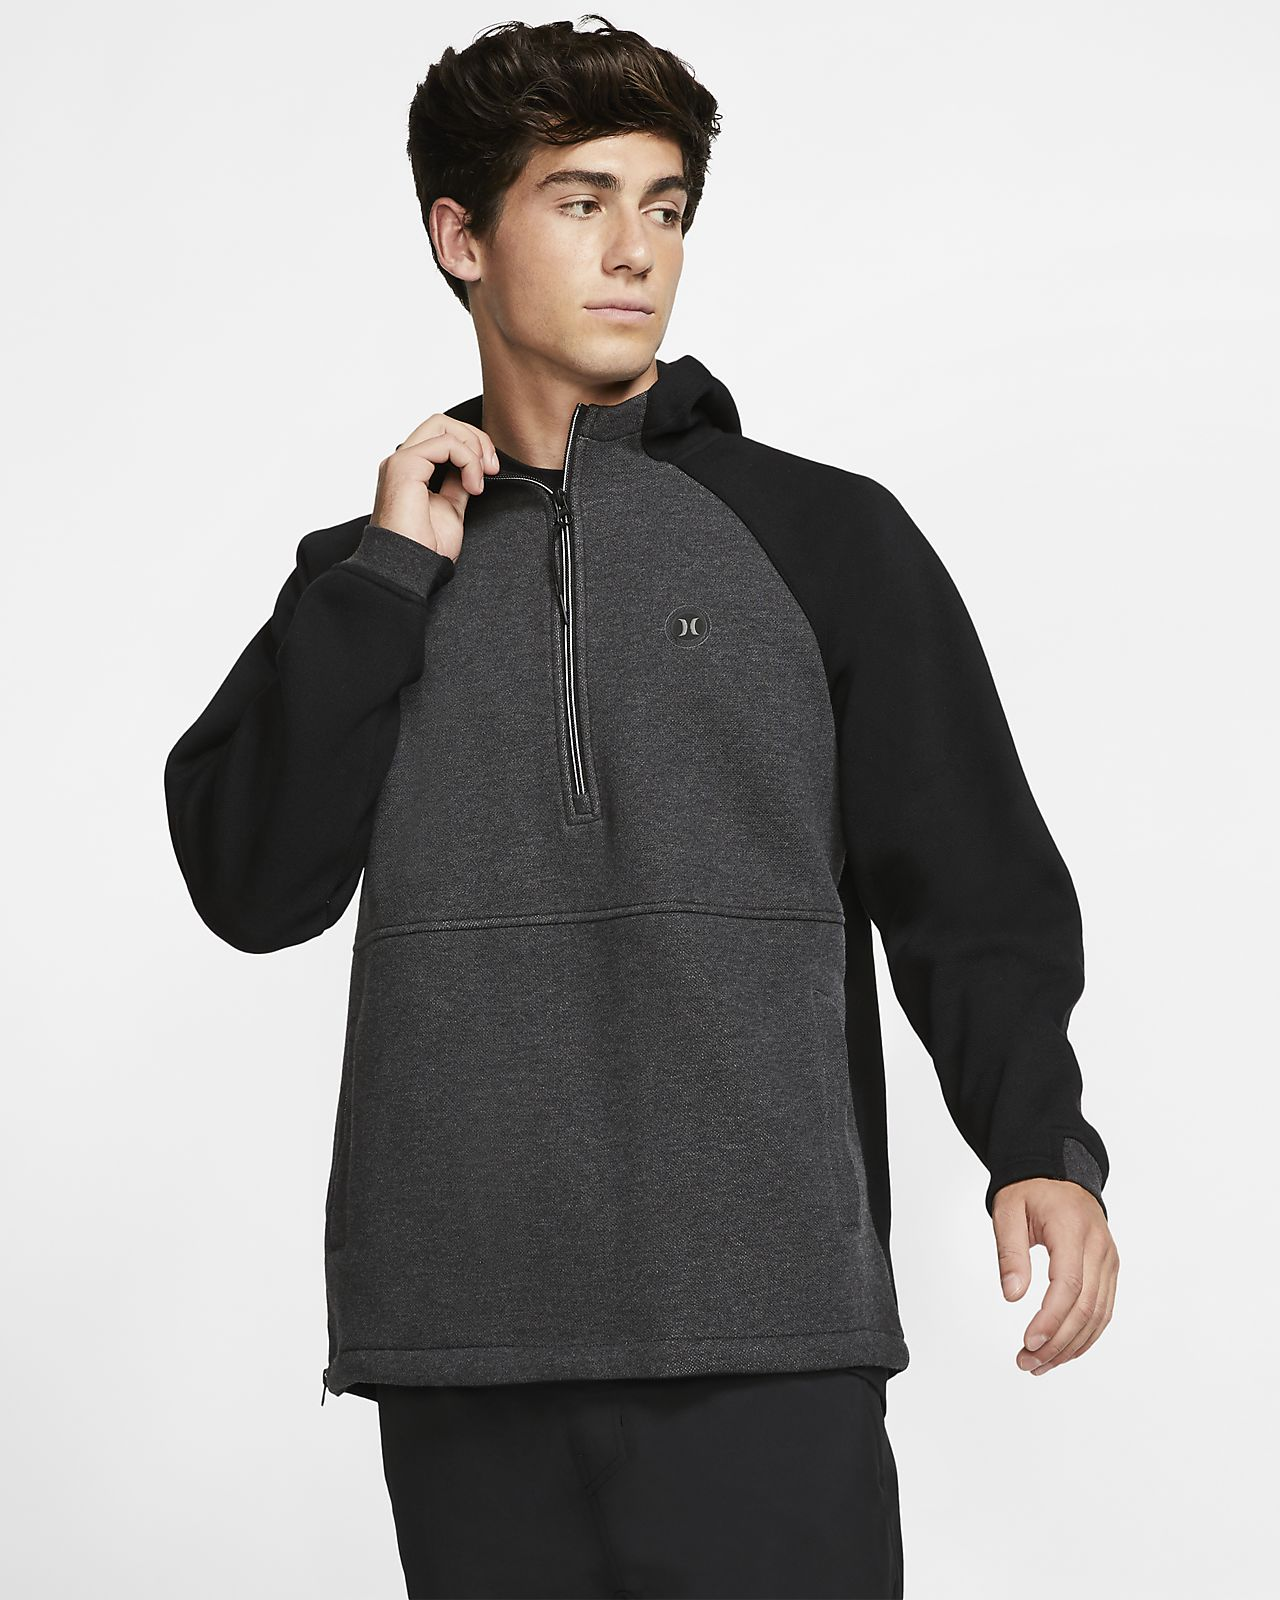 Hurley Therma Endure Elite Men's 1/4-Zip Fleece Top